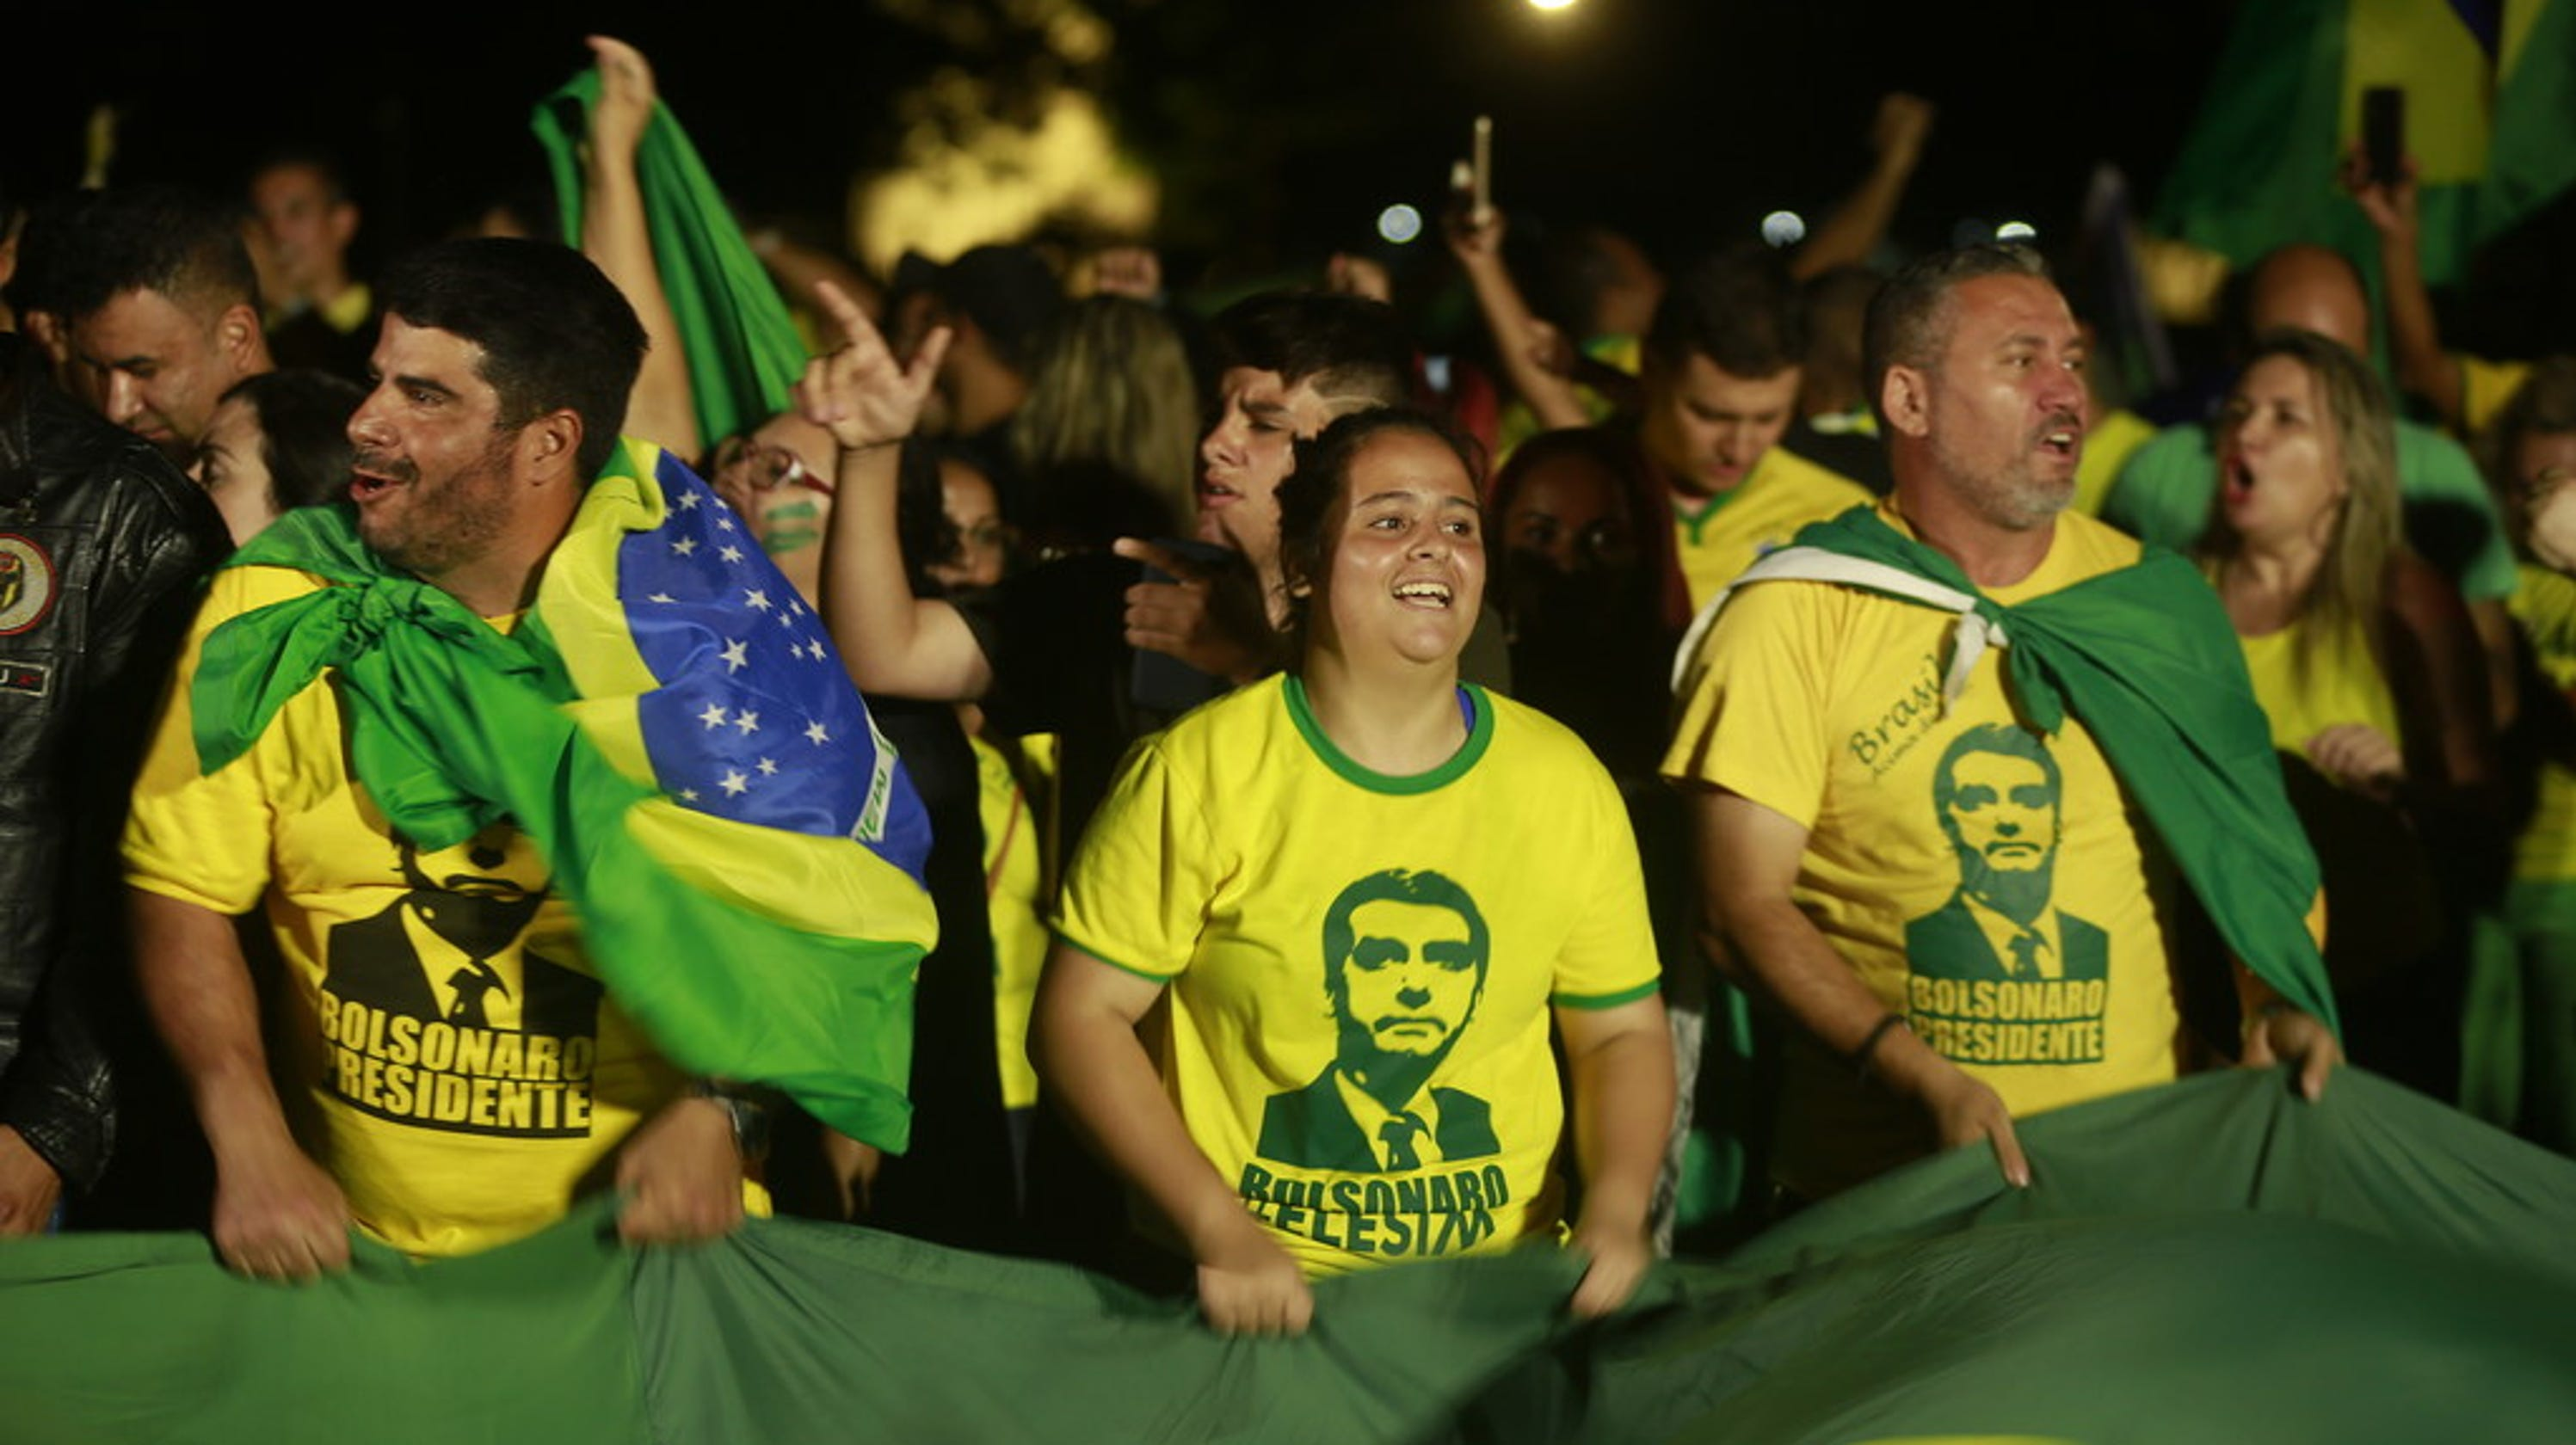 jair bolsonaro wins brazil presidency after rough campaign